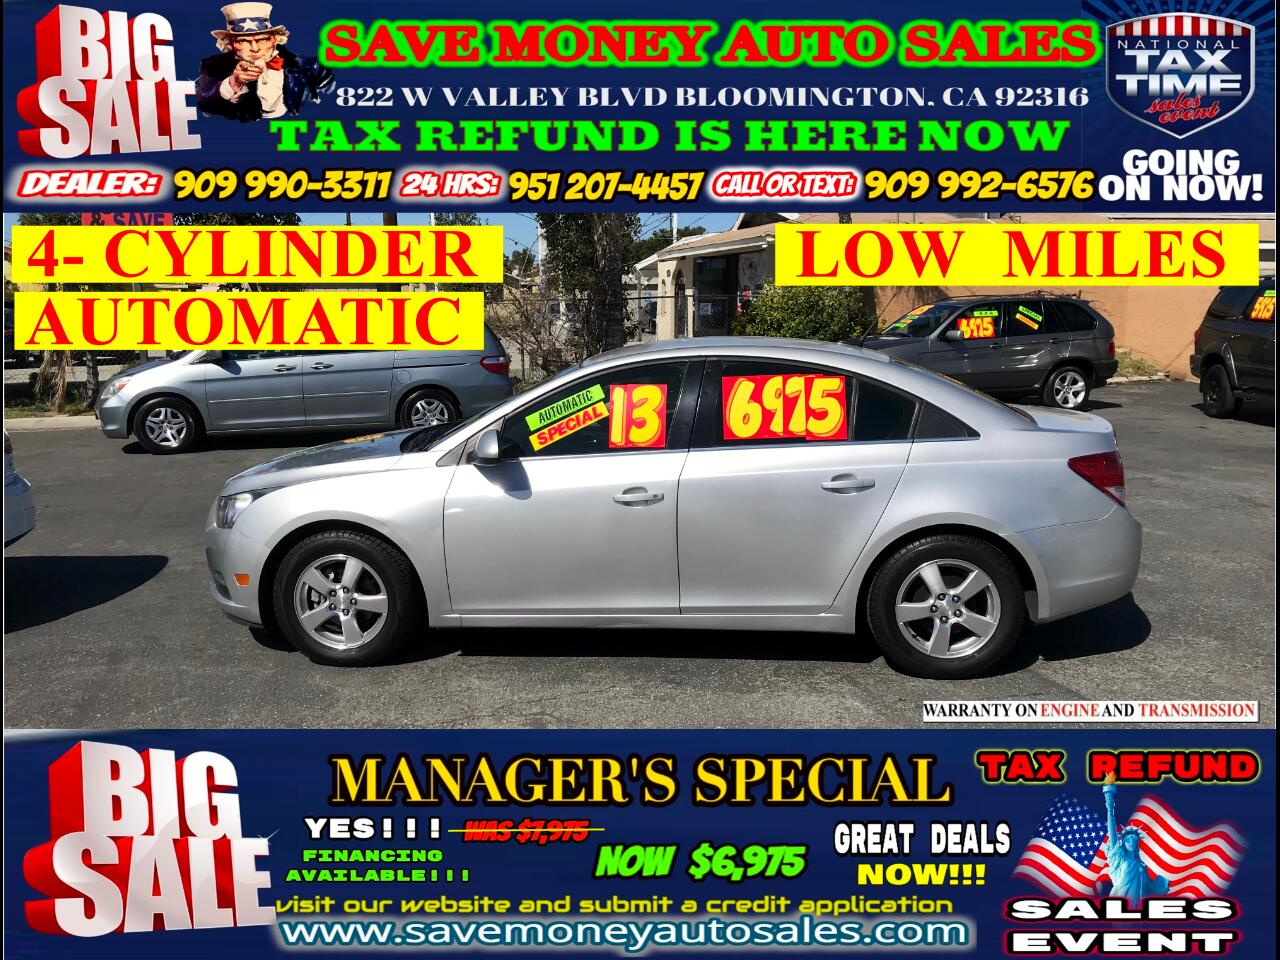 2013 Chevrolet Cruze LT>LOW MILES> 4- CYLINDER> EXTRA CLEAN